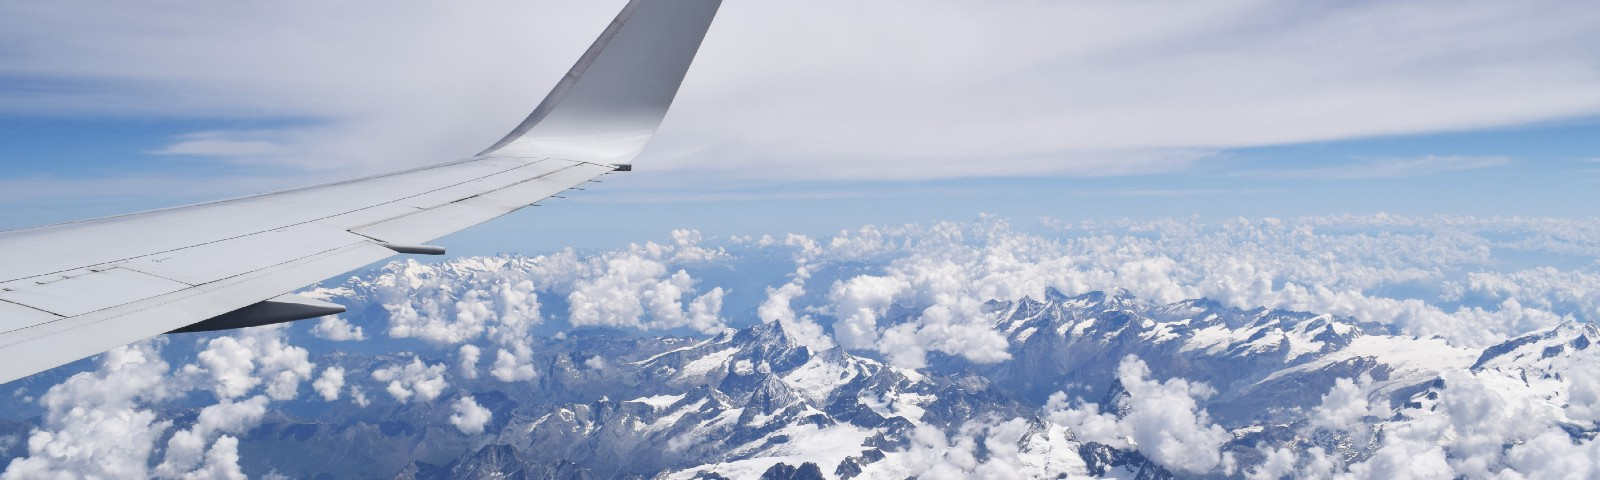 Airplane wing above clouds and mountains